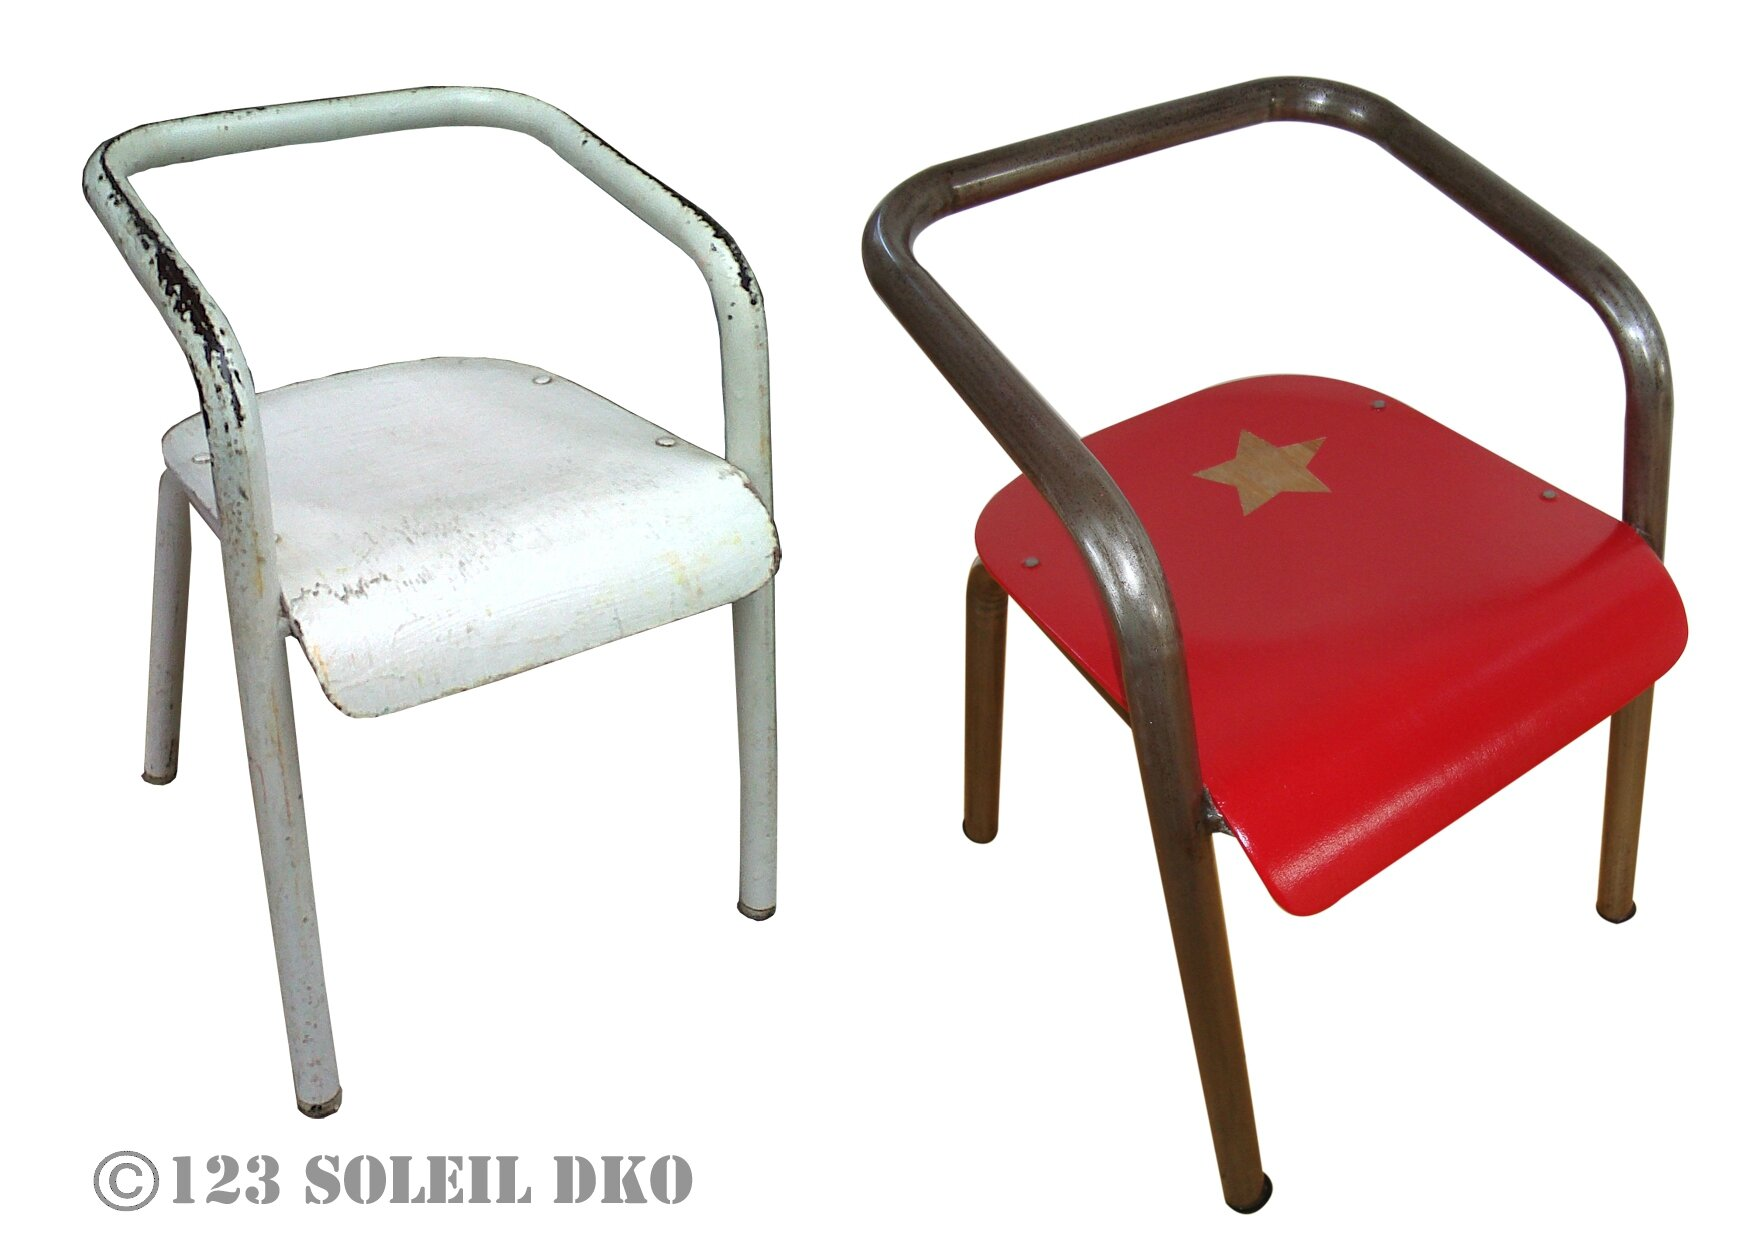 Chaise d'écolier style Hitier Gascoin